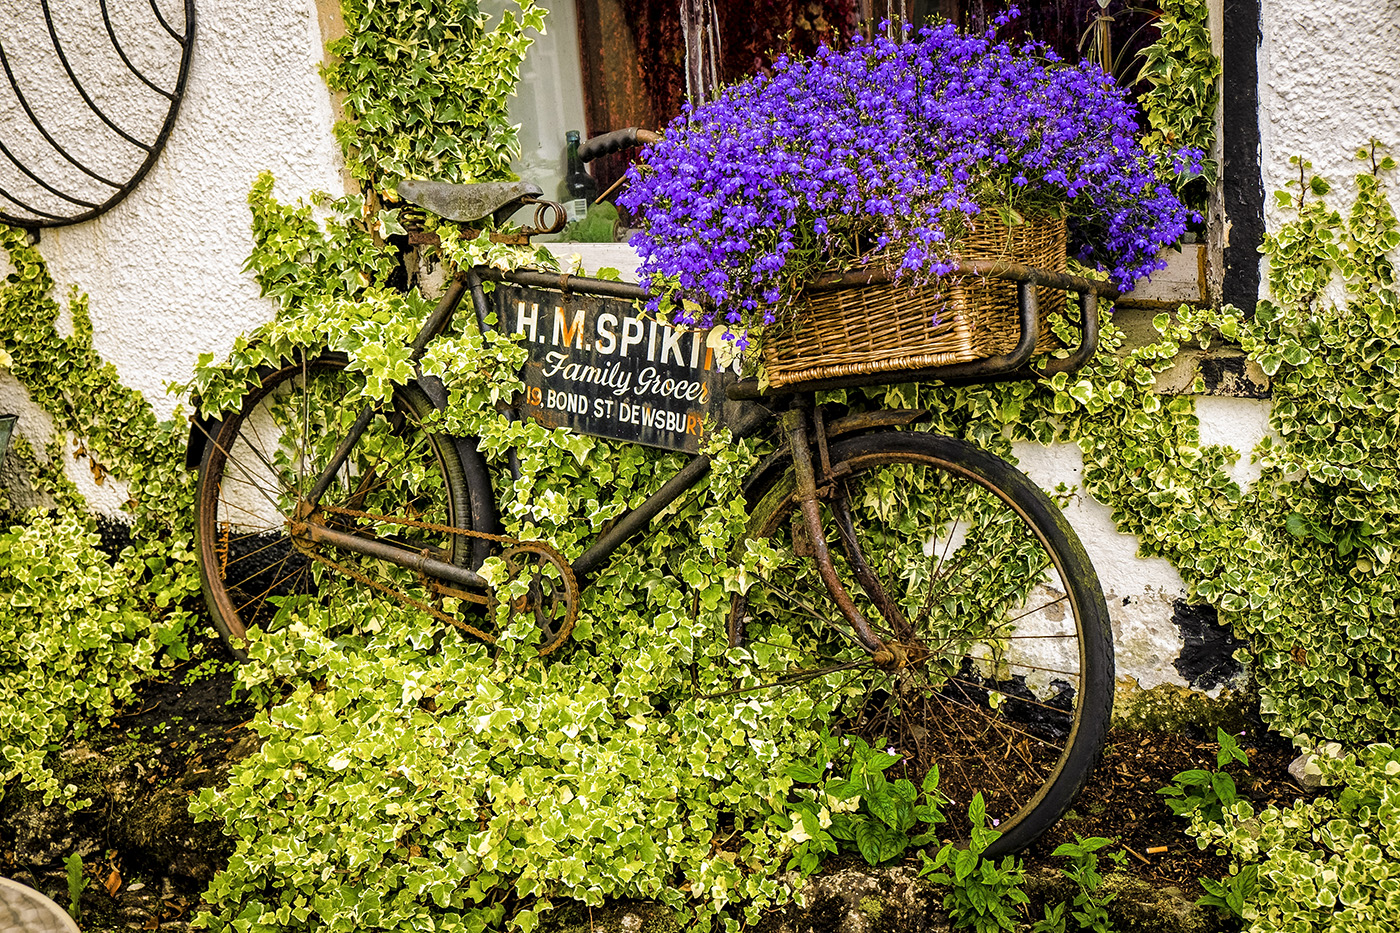 The Grocer's Bike